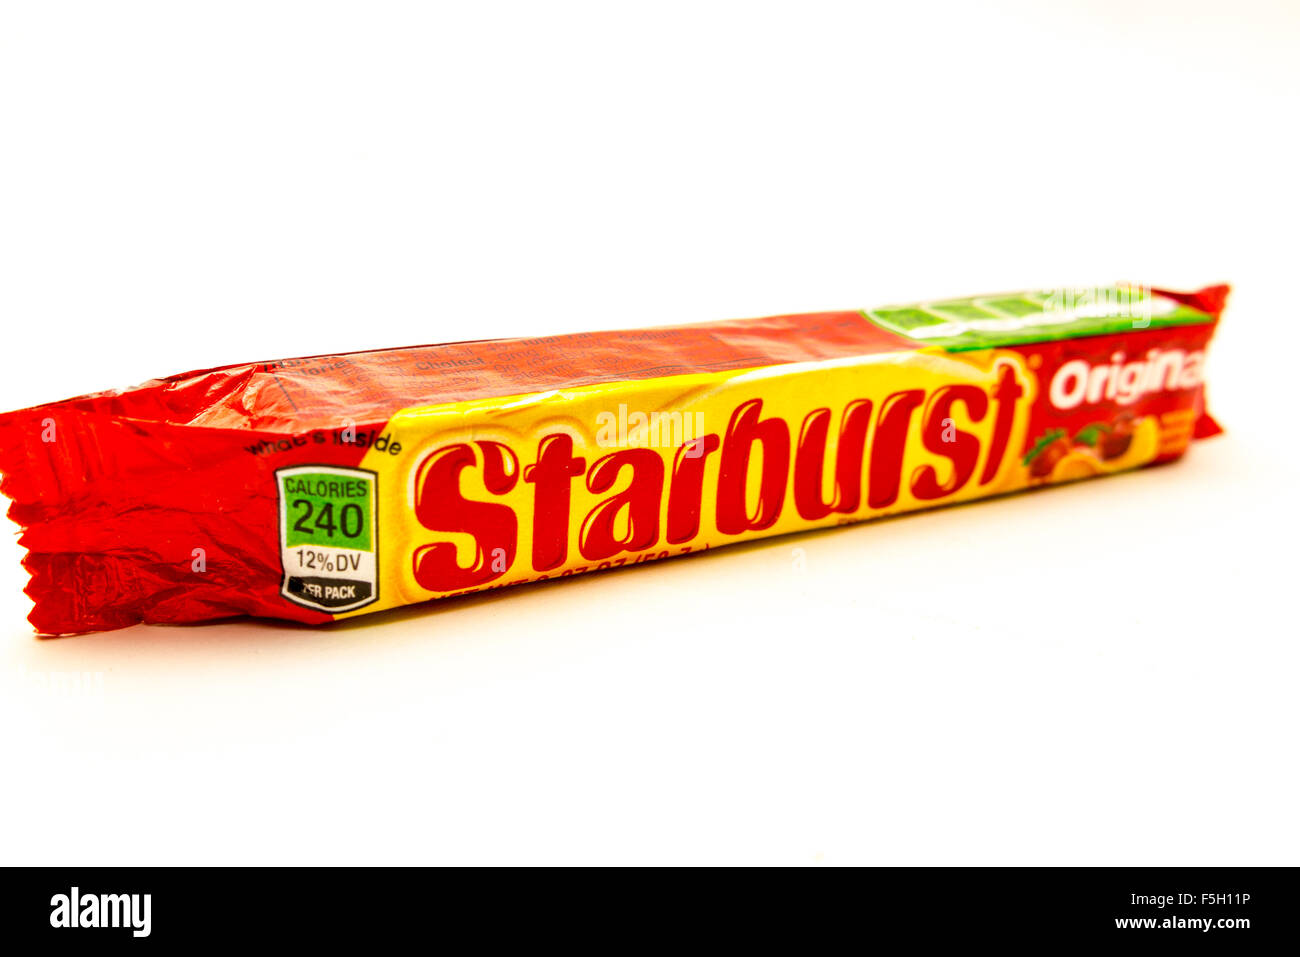 A Package of Starburst Candy made by the Wrigley company subsidiary